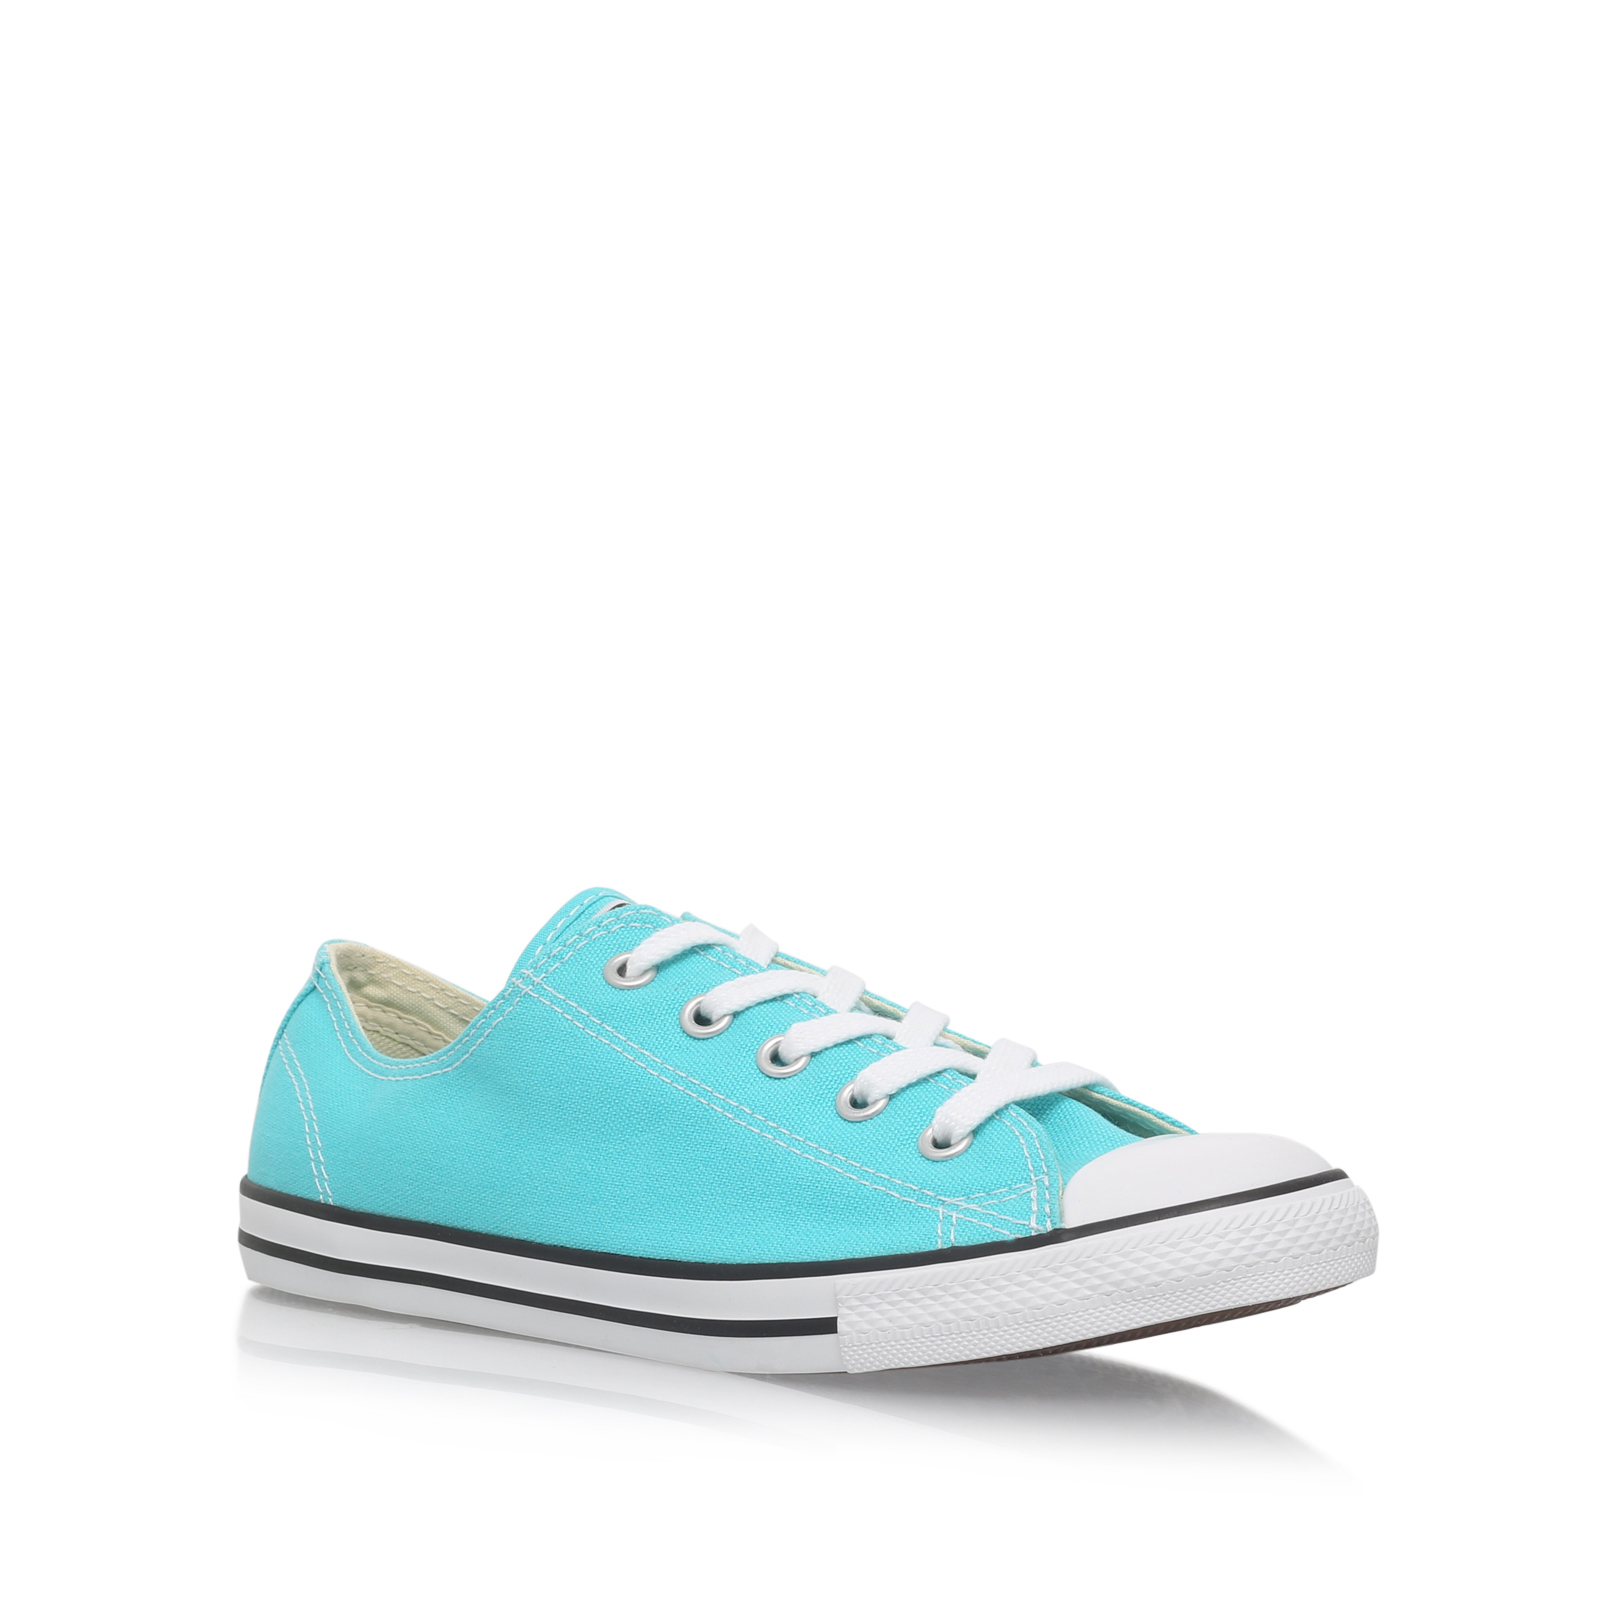 converse trainer low top converse alba blue low top